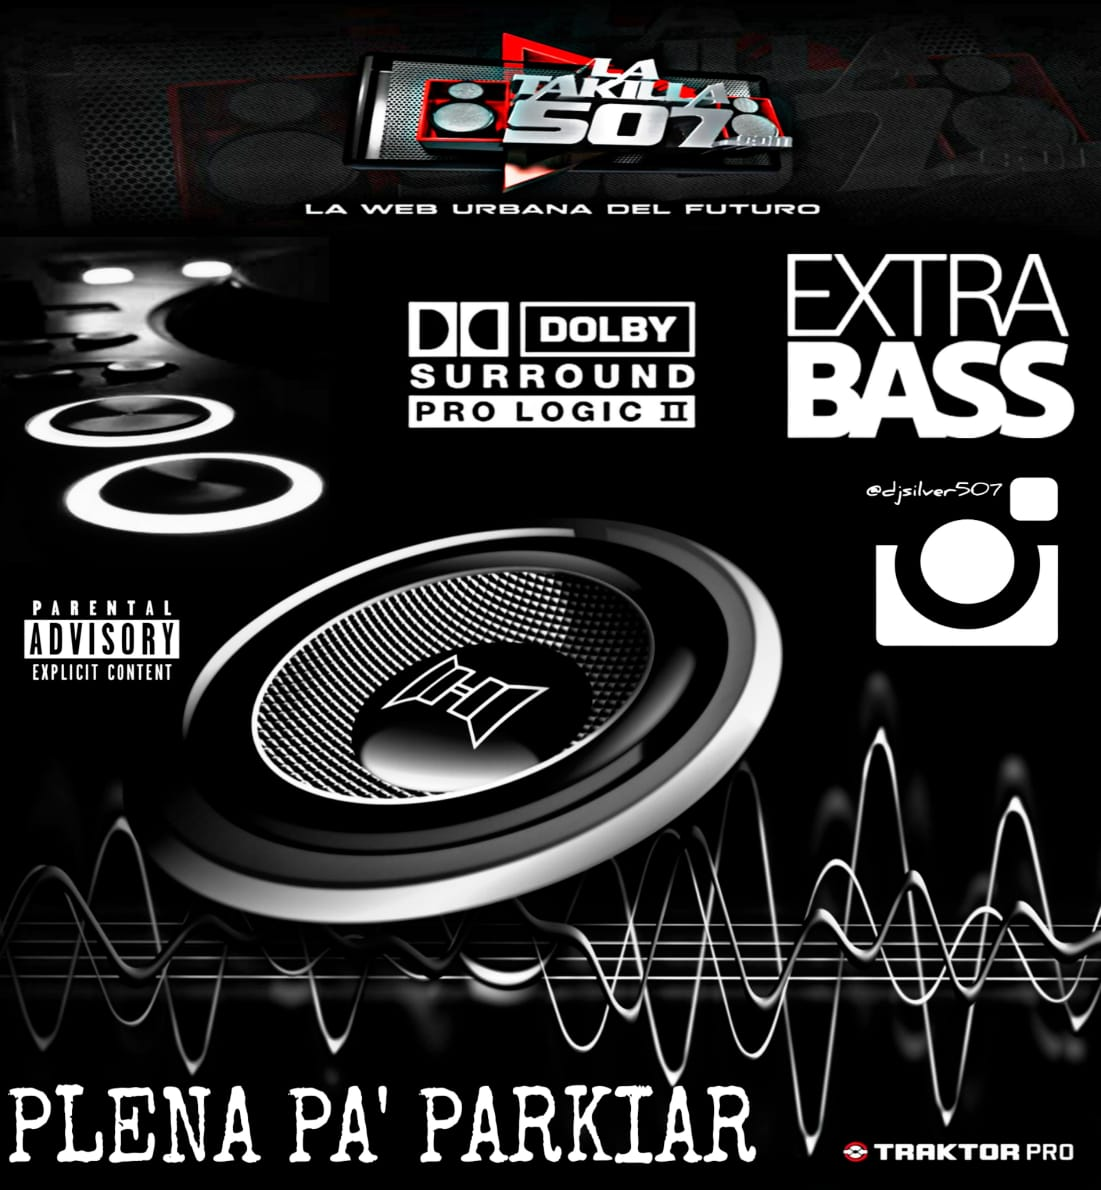 Plenas Pa Parkiar Vol 1 - Dj Silver507.mp3